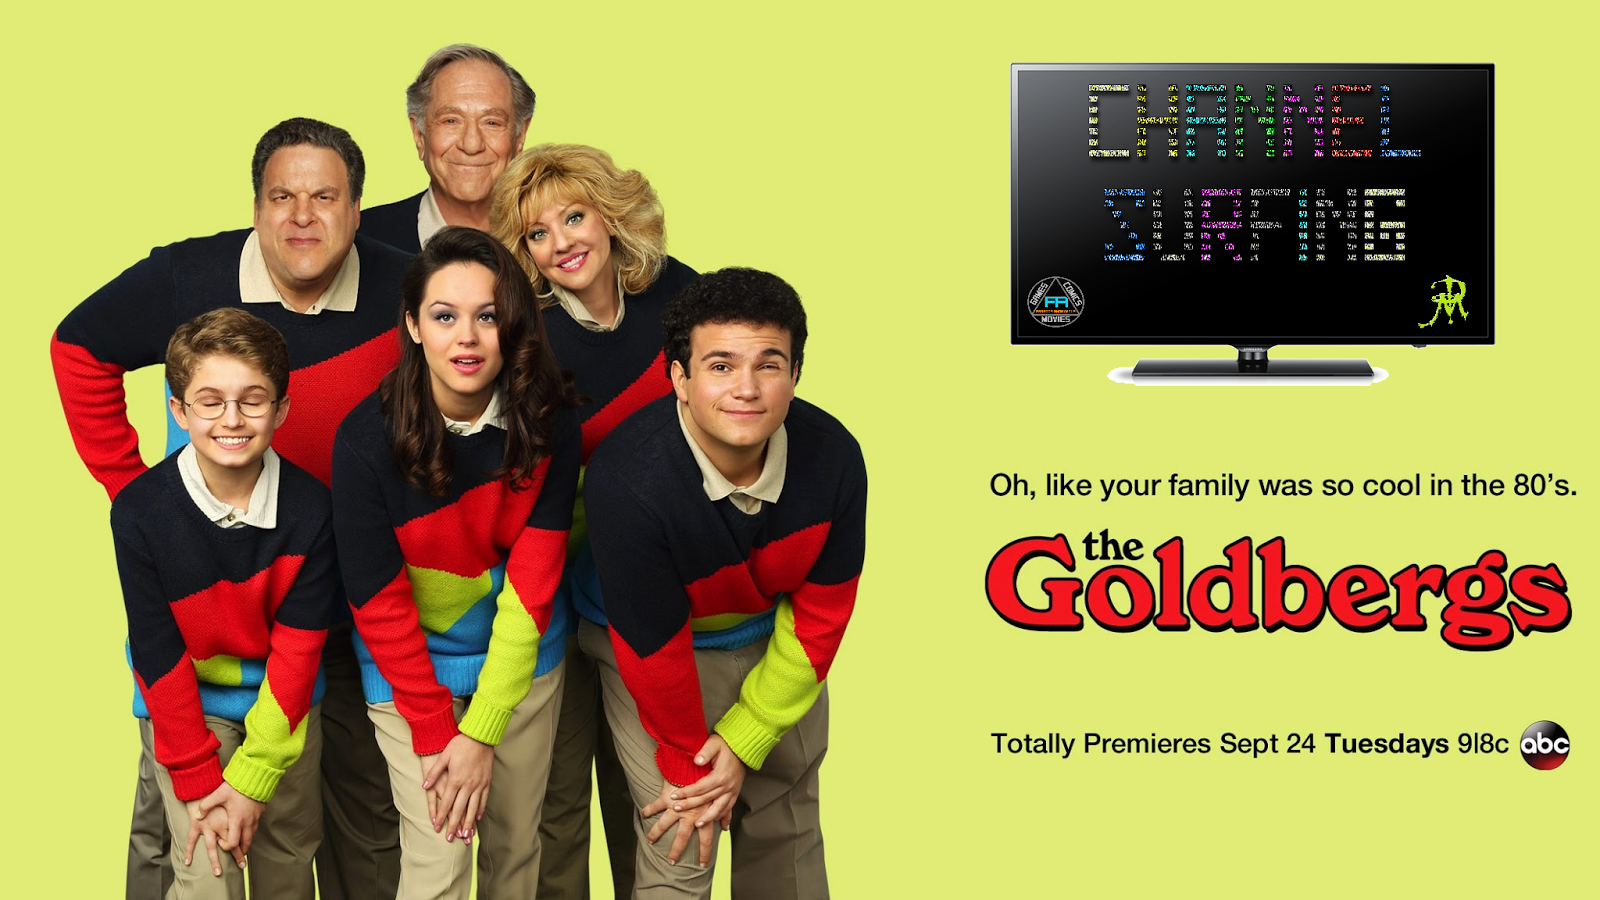 The Goldbergs Season Two News and Rumors